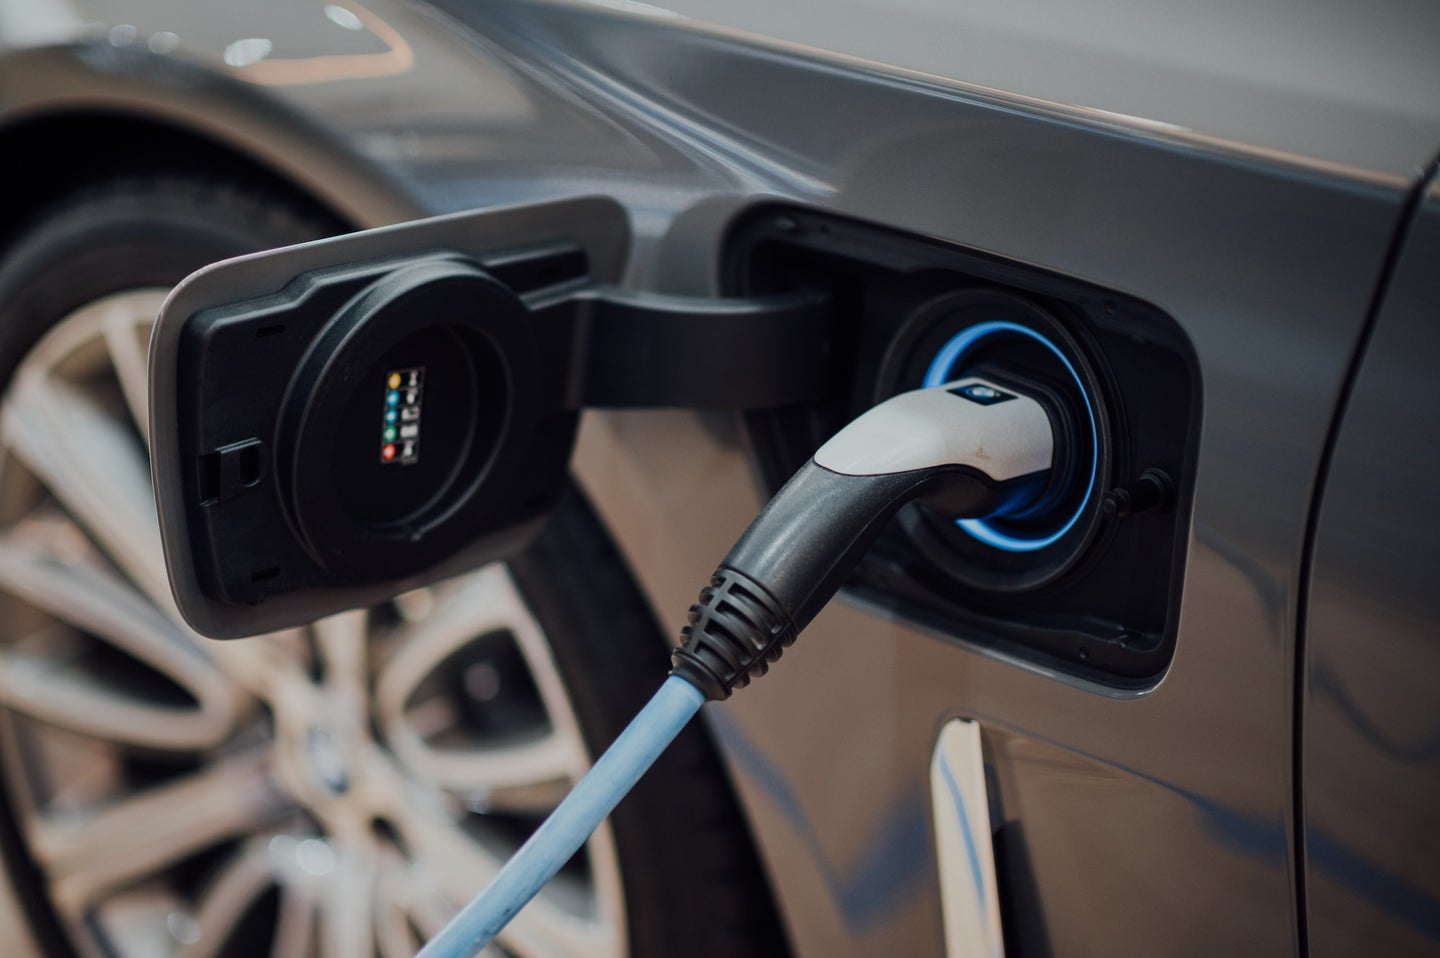 Charging an electric vehicle.